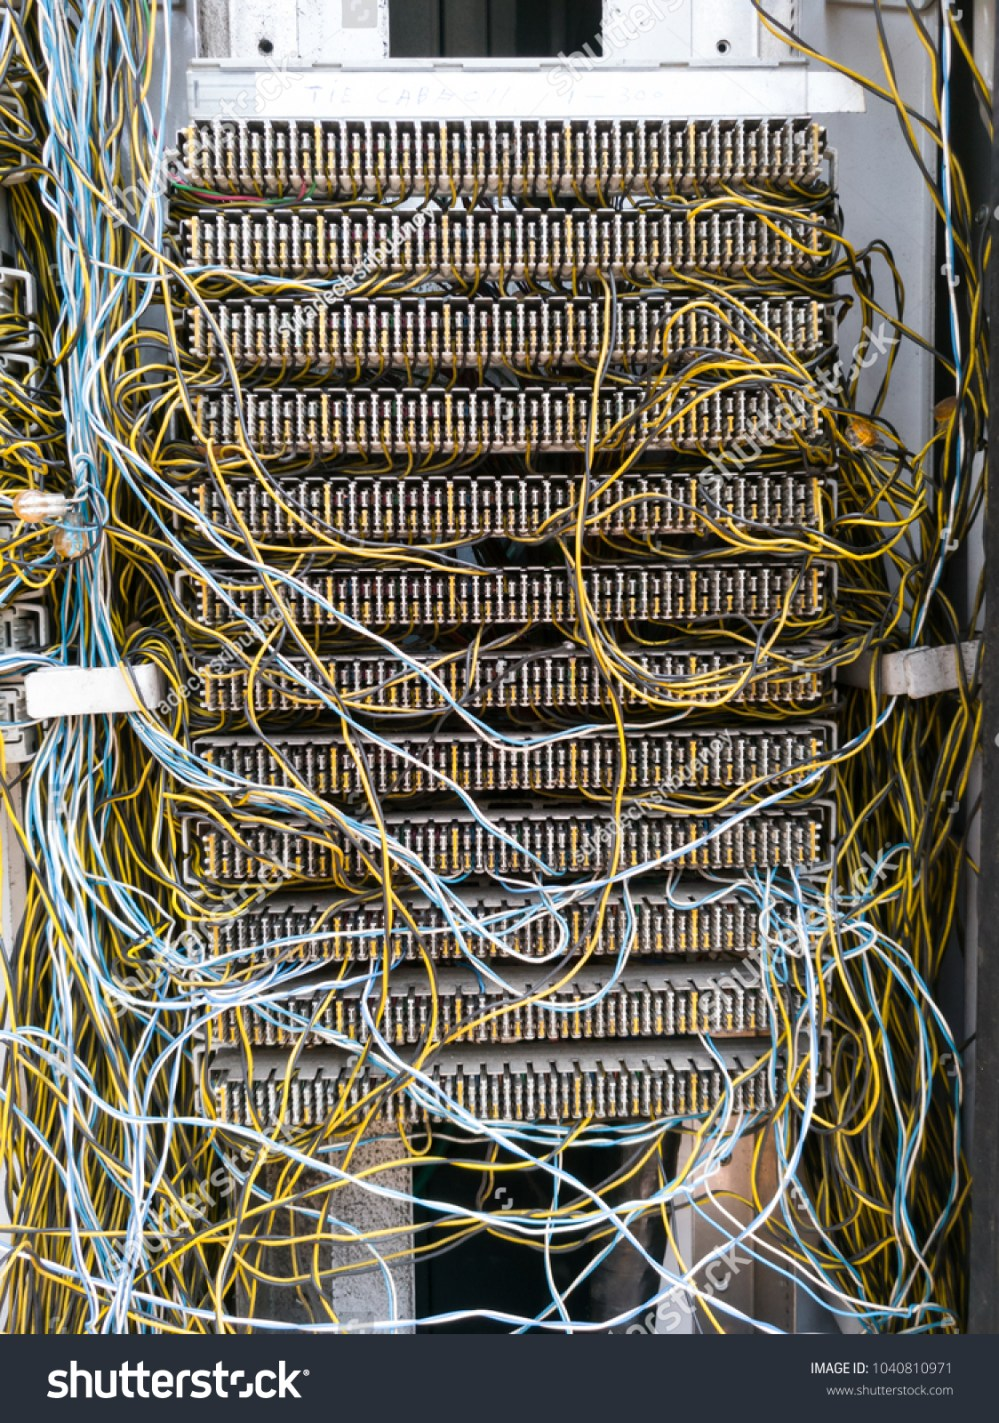 medium resolution of telephone connection panel jumper wire mini stock photo edit now telephone cable wiring configuration jumper